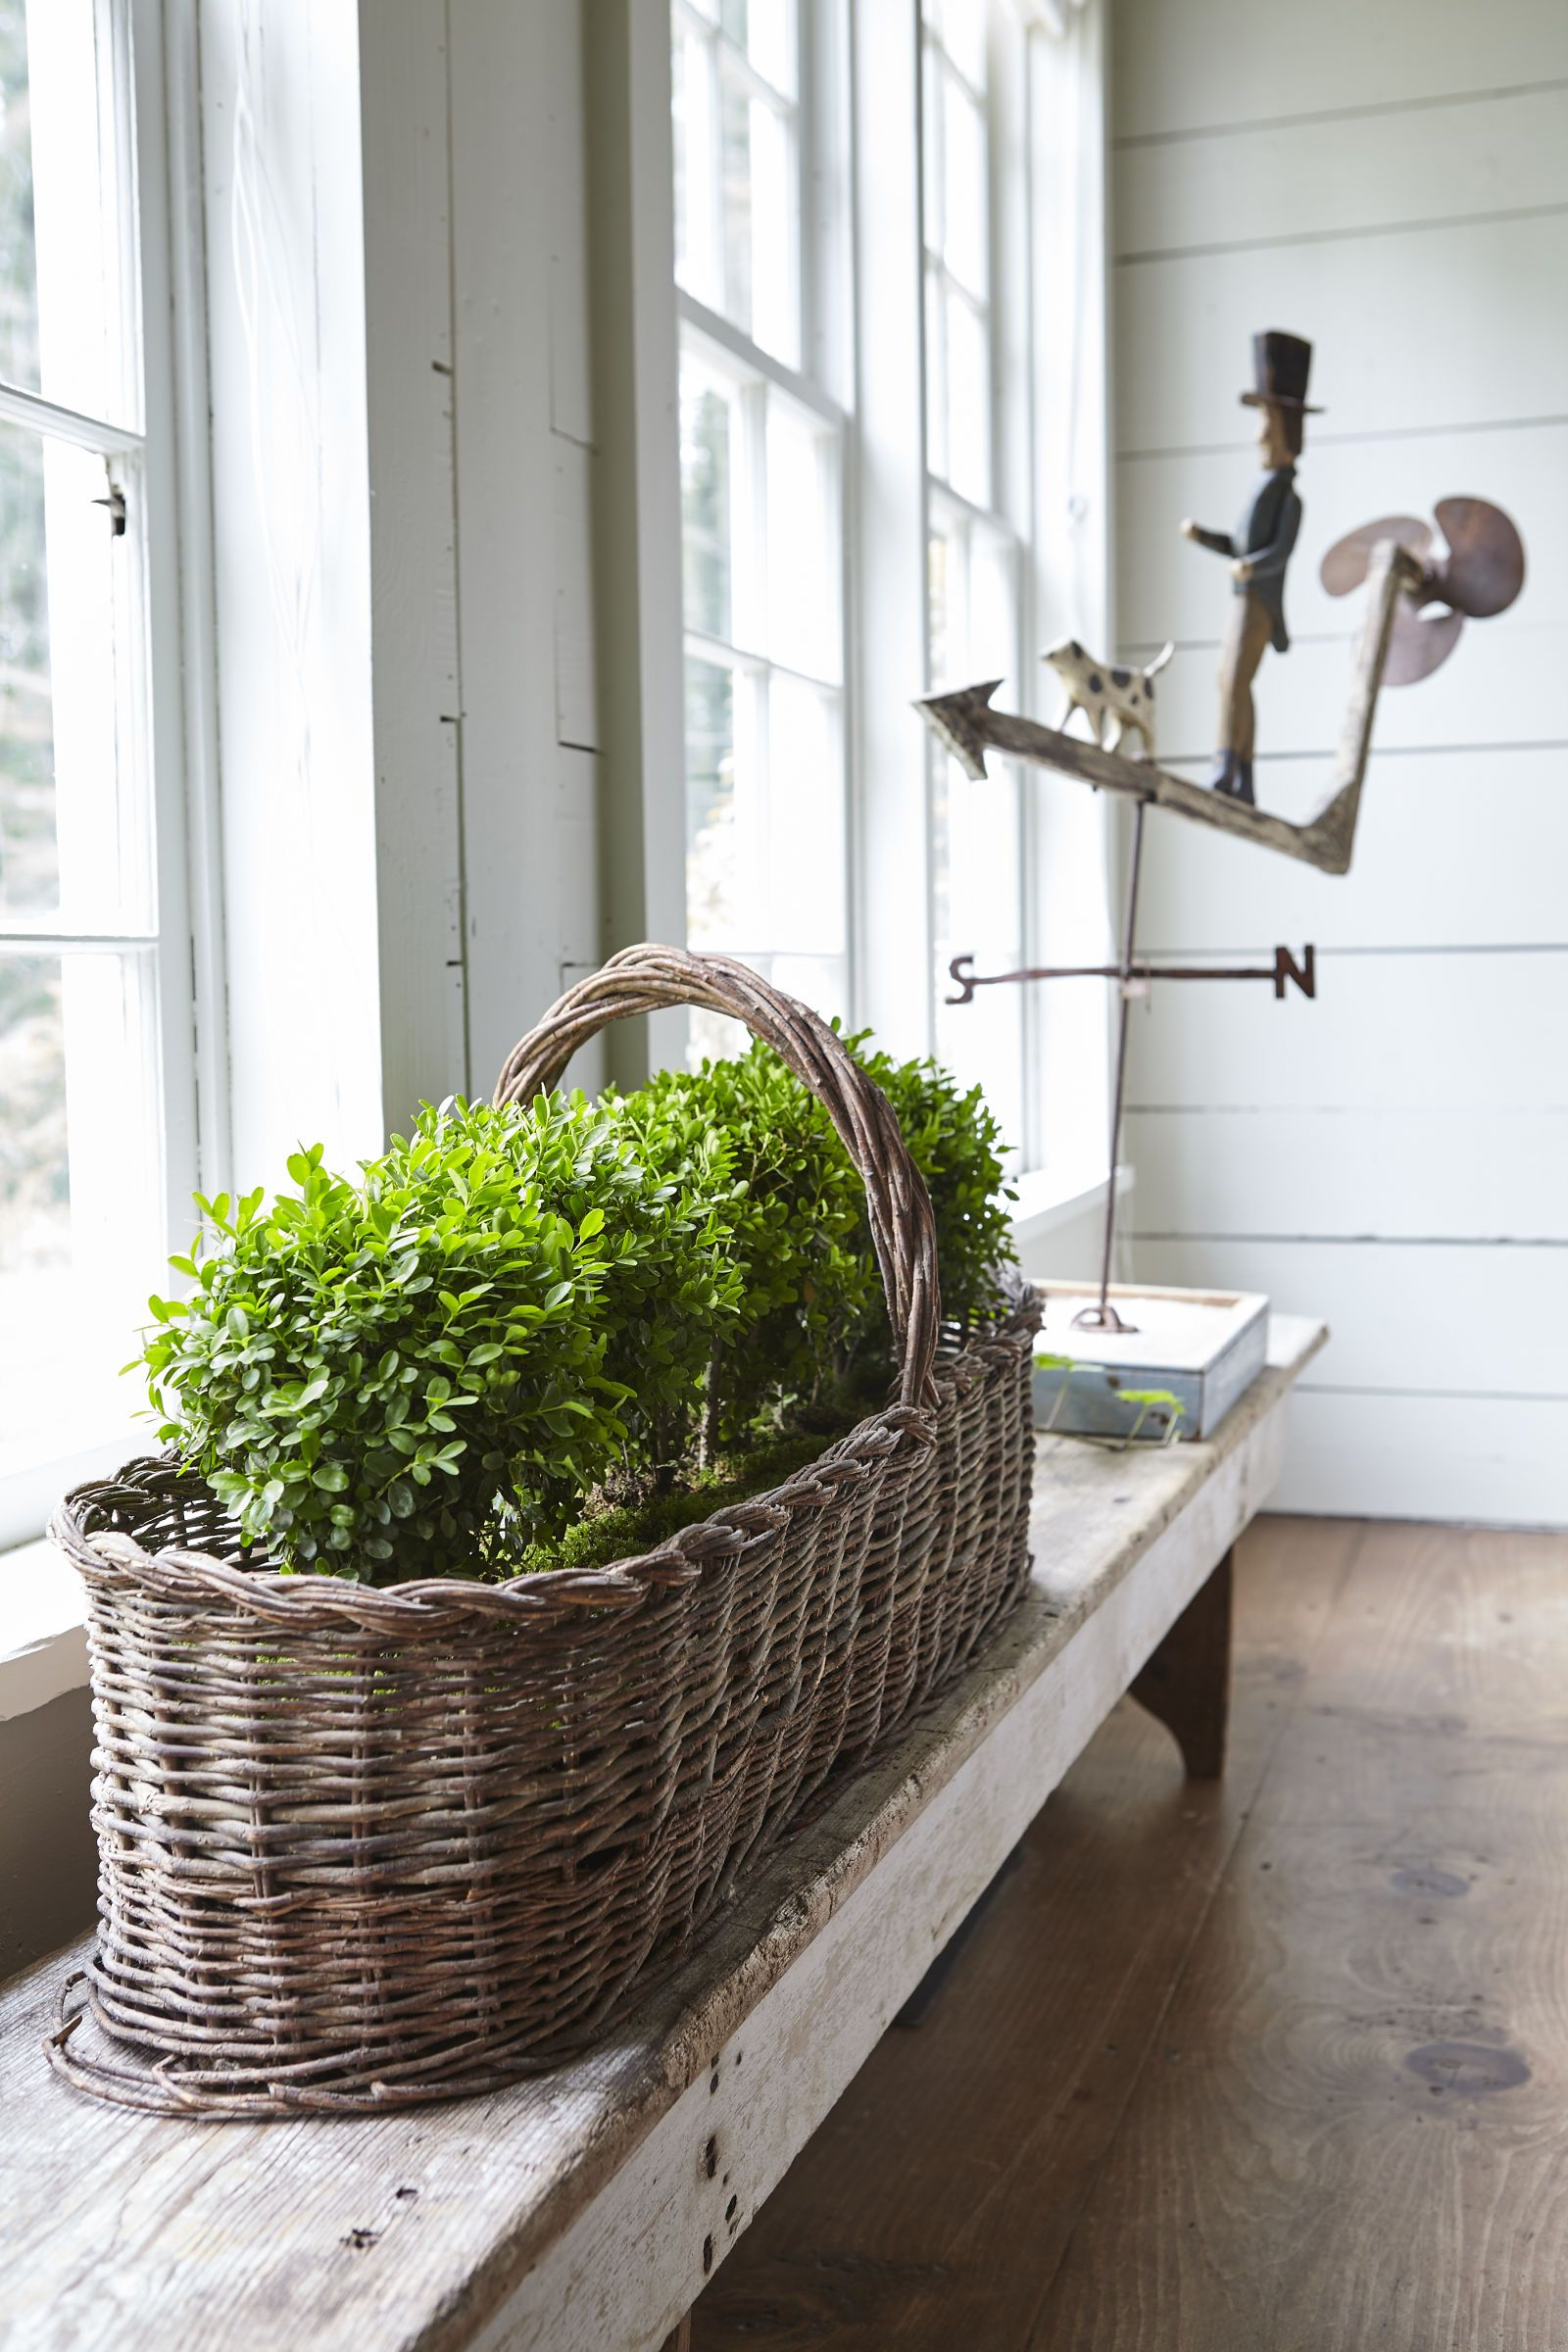 12 Easy Ways To Brighten Your Home With Annuals And